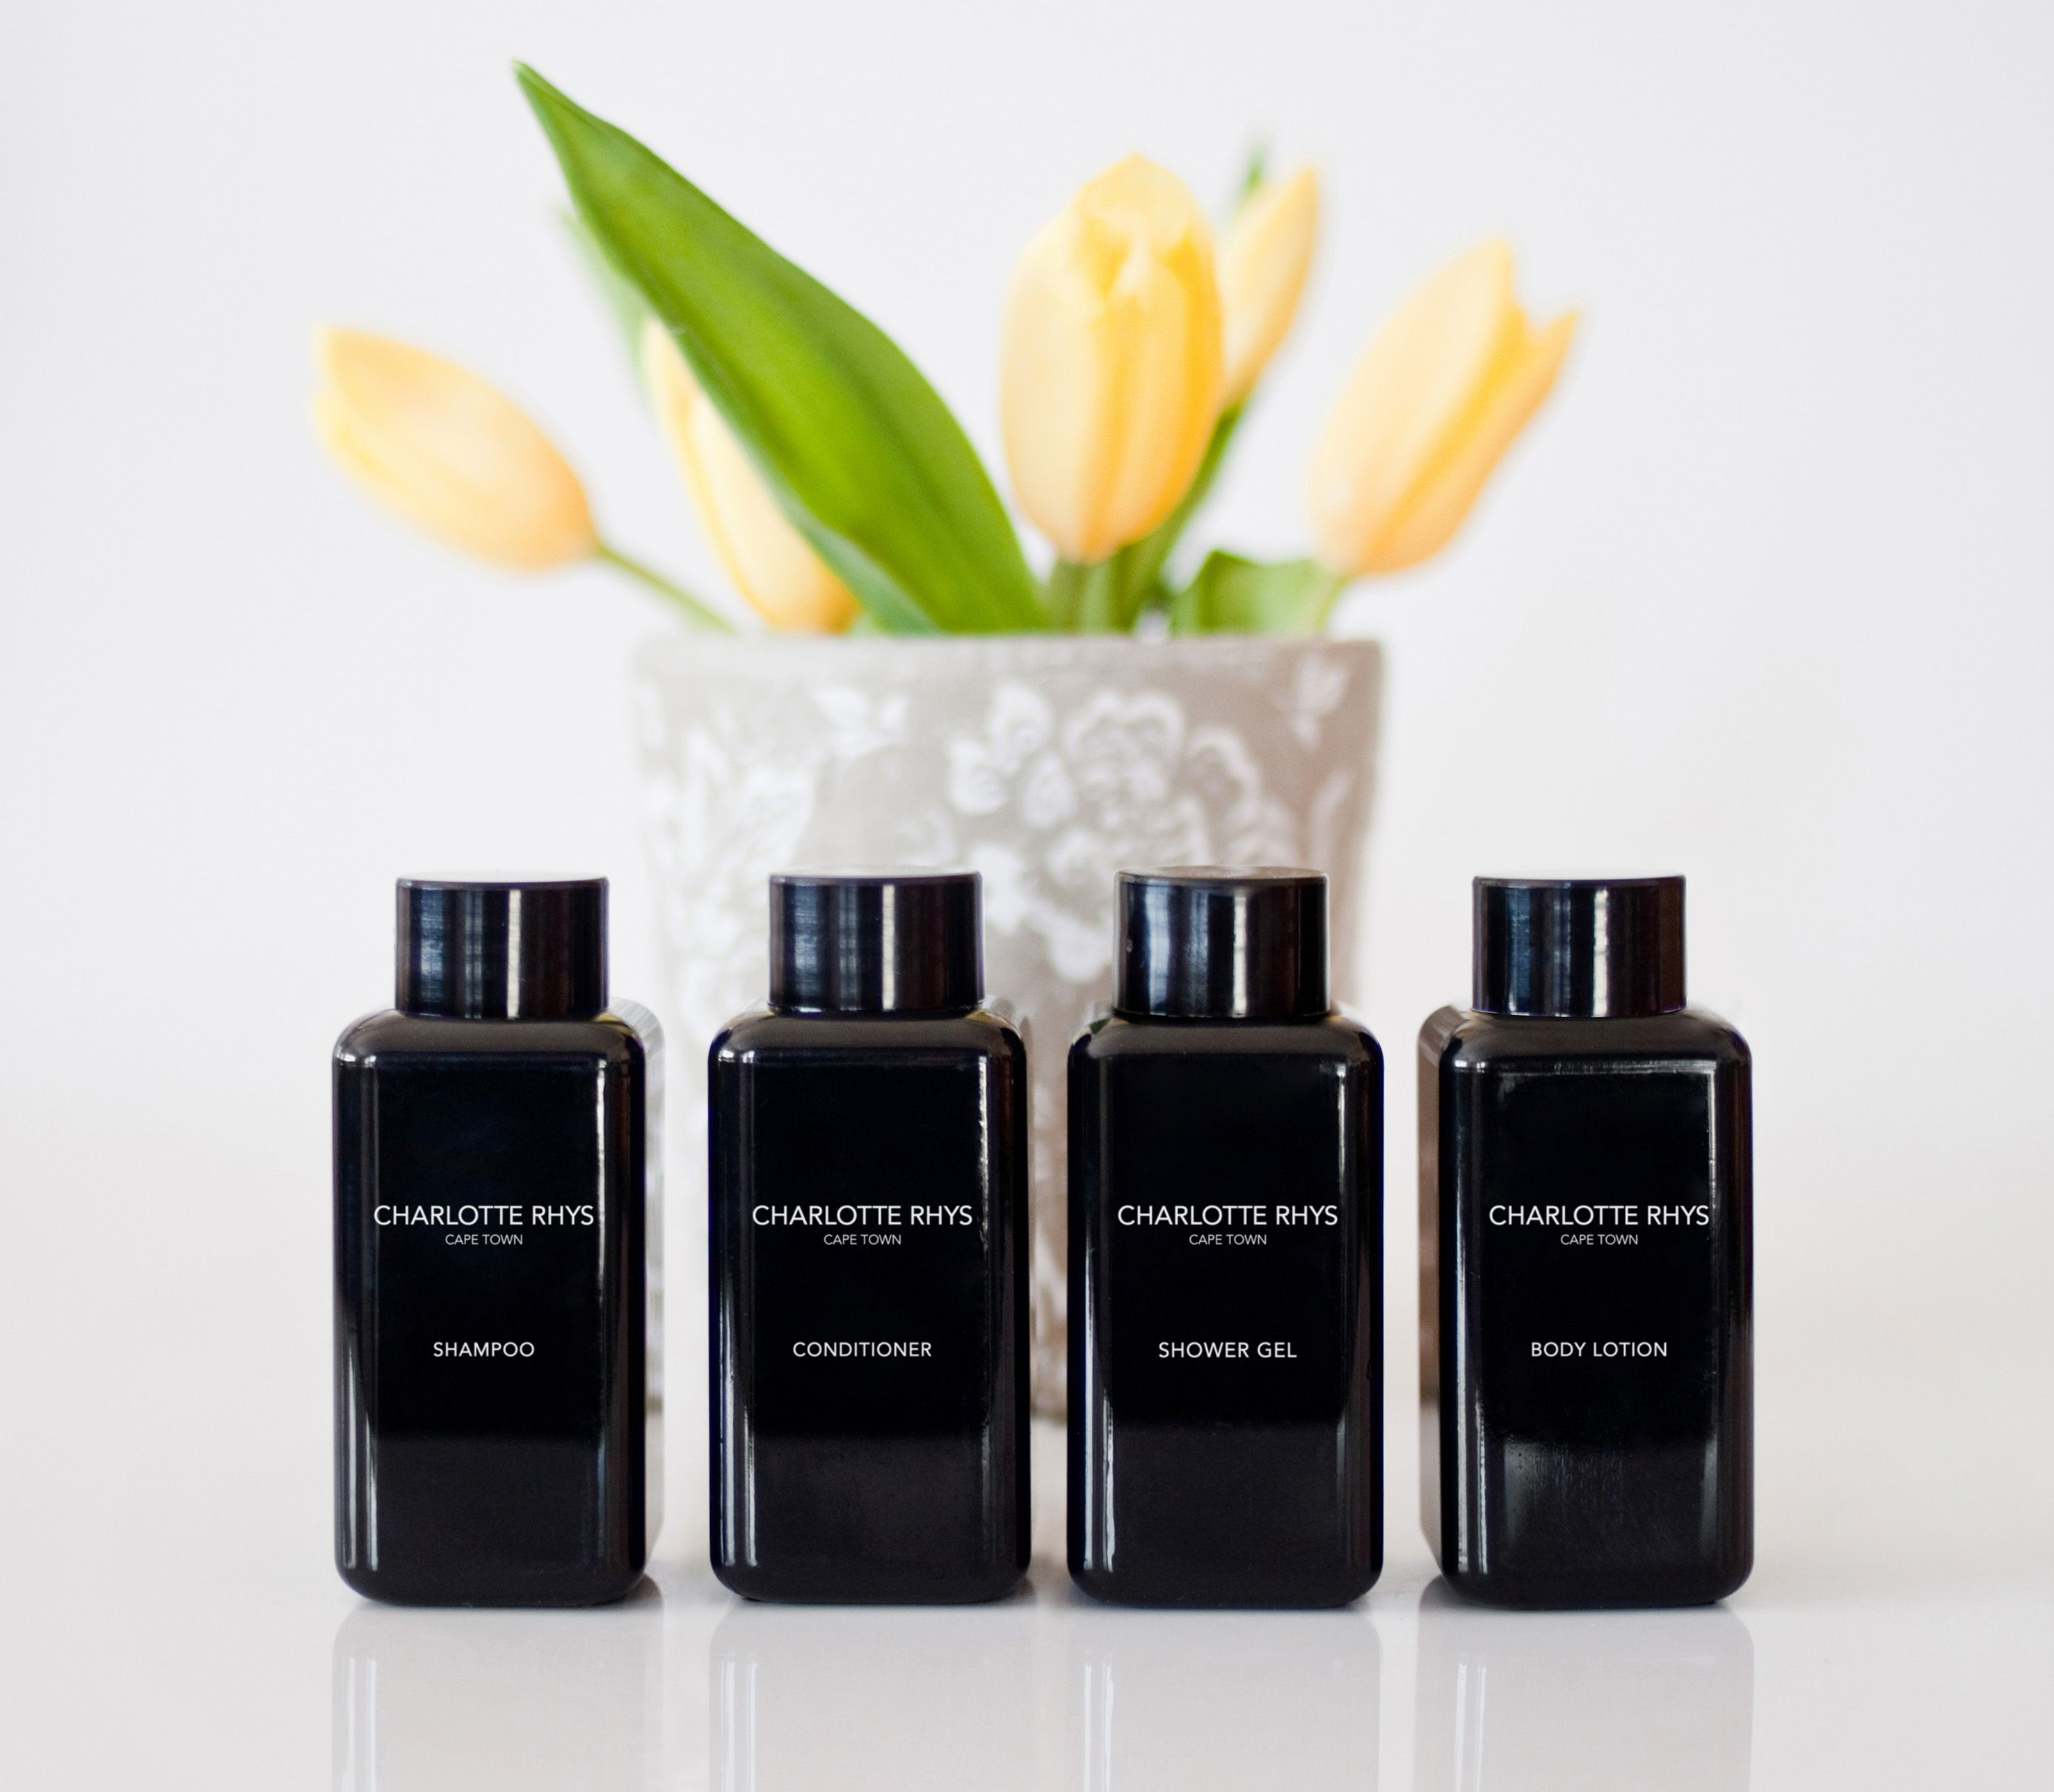 Exquisitely Luxurious Hotel Toiletries By Charlotte Rhys